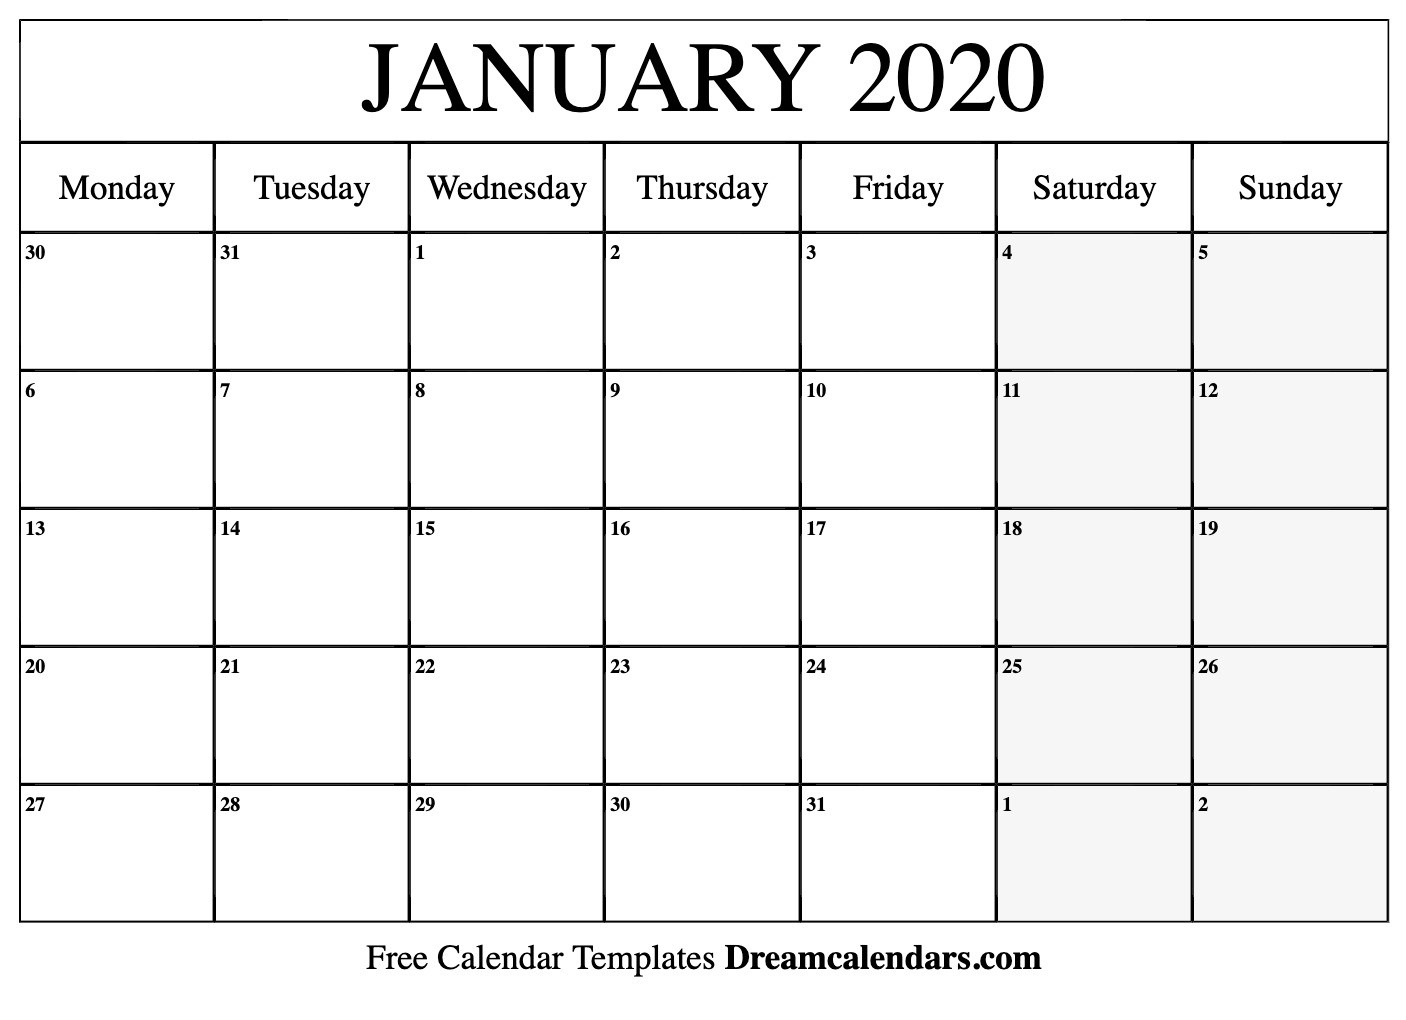 Best 2020 January Calendar With Holidays Printable-January 2020 Calendar Printable Wincalendar